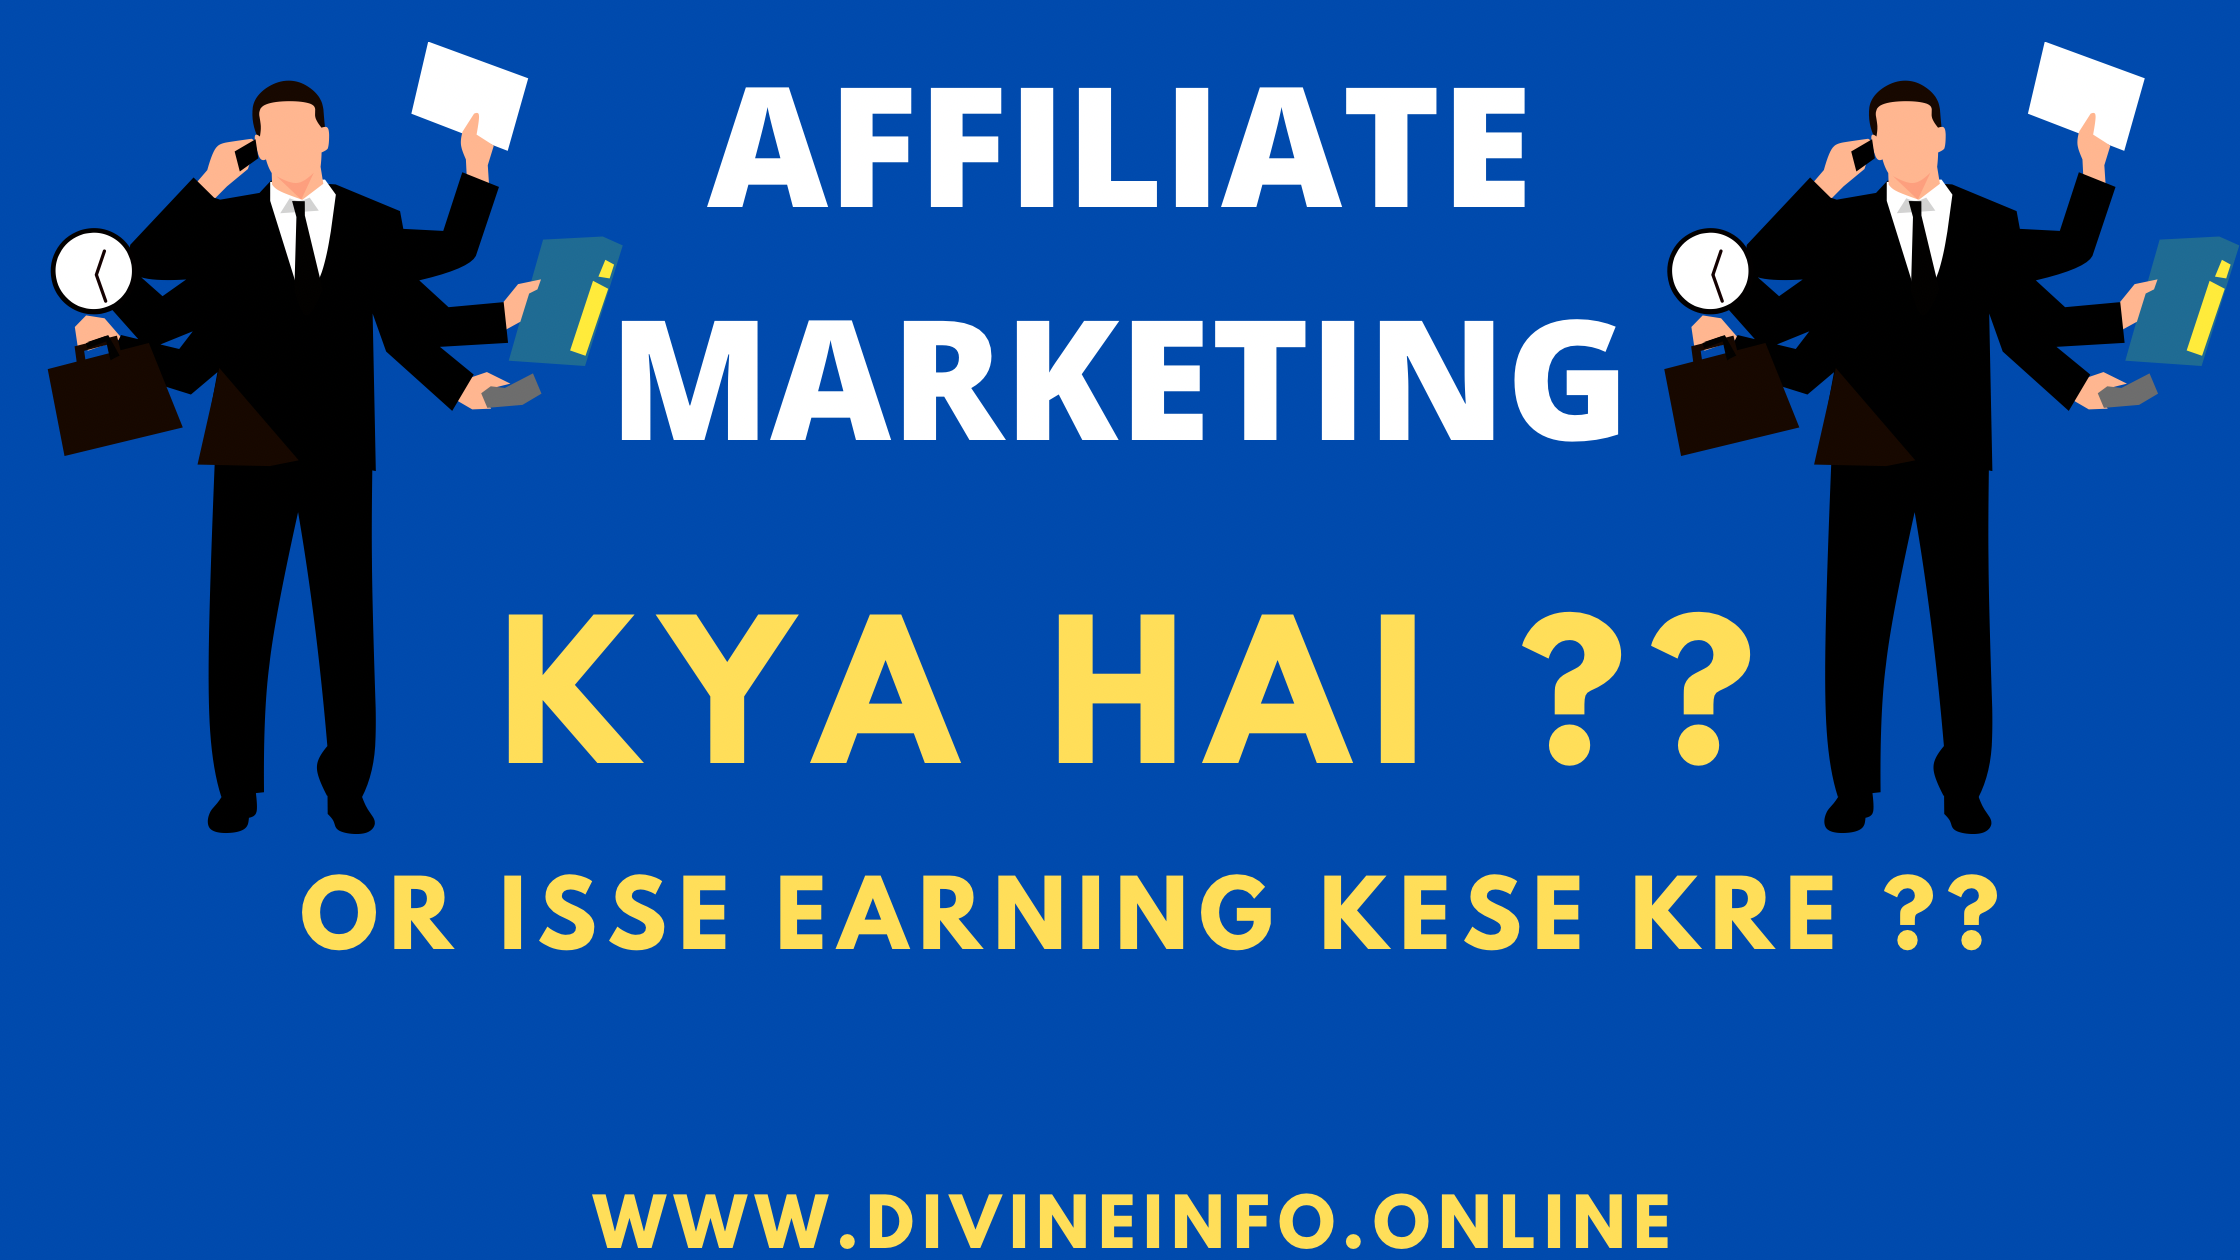 image for affiliate marketing in hindi